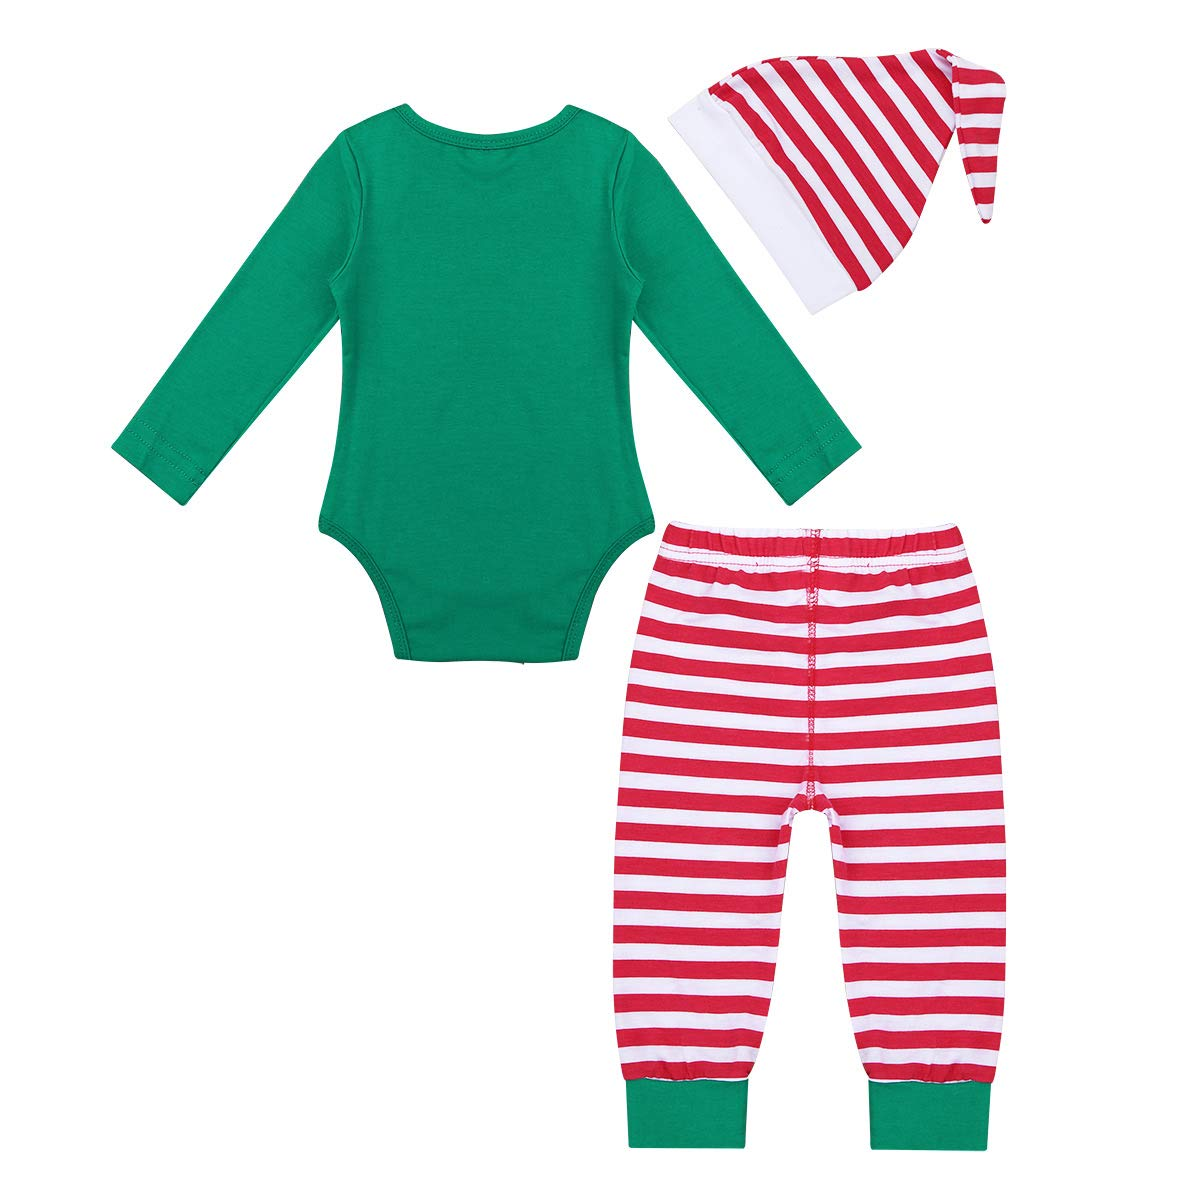 Freebily Baby Boys Christmas Elf Costume Festive Outfits Party Fancy Dress up Romper with Pants Hat Set Green 0-3 Months